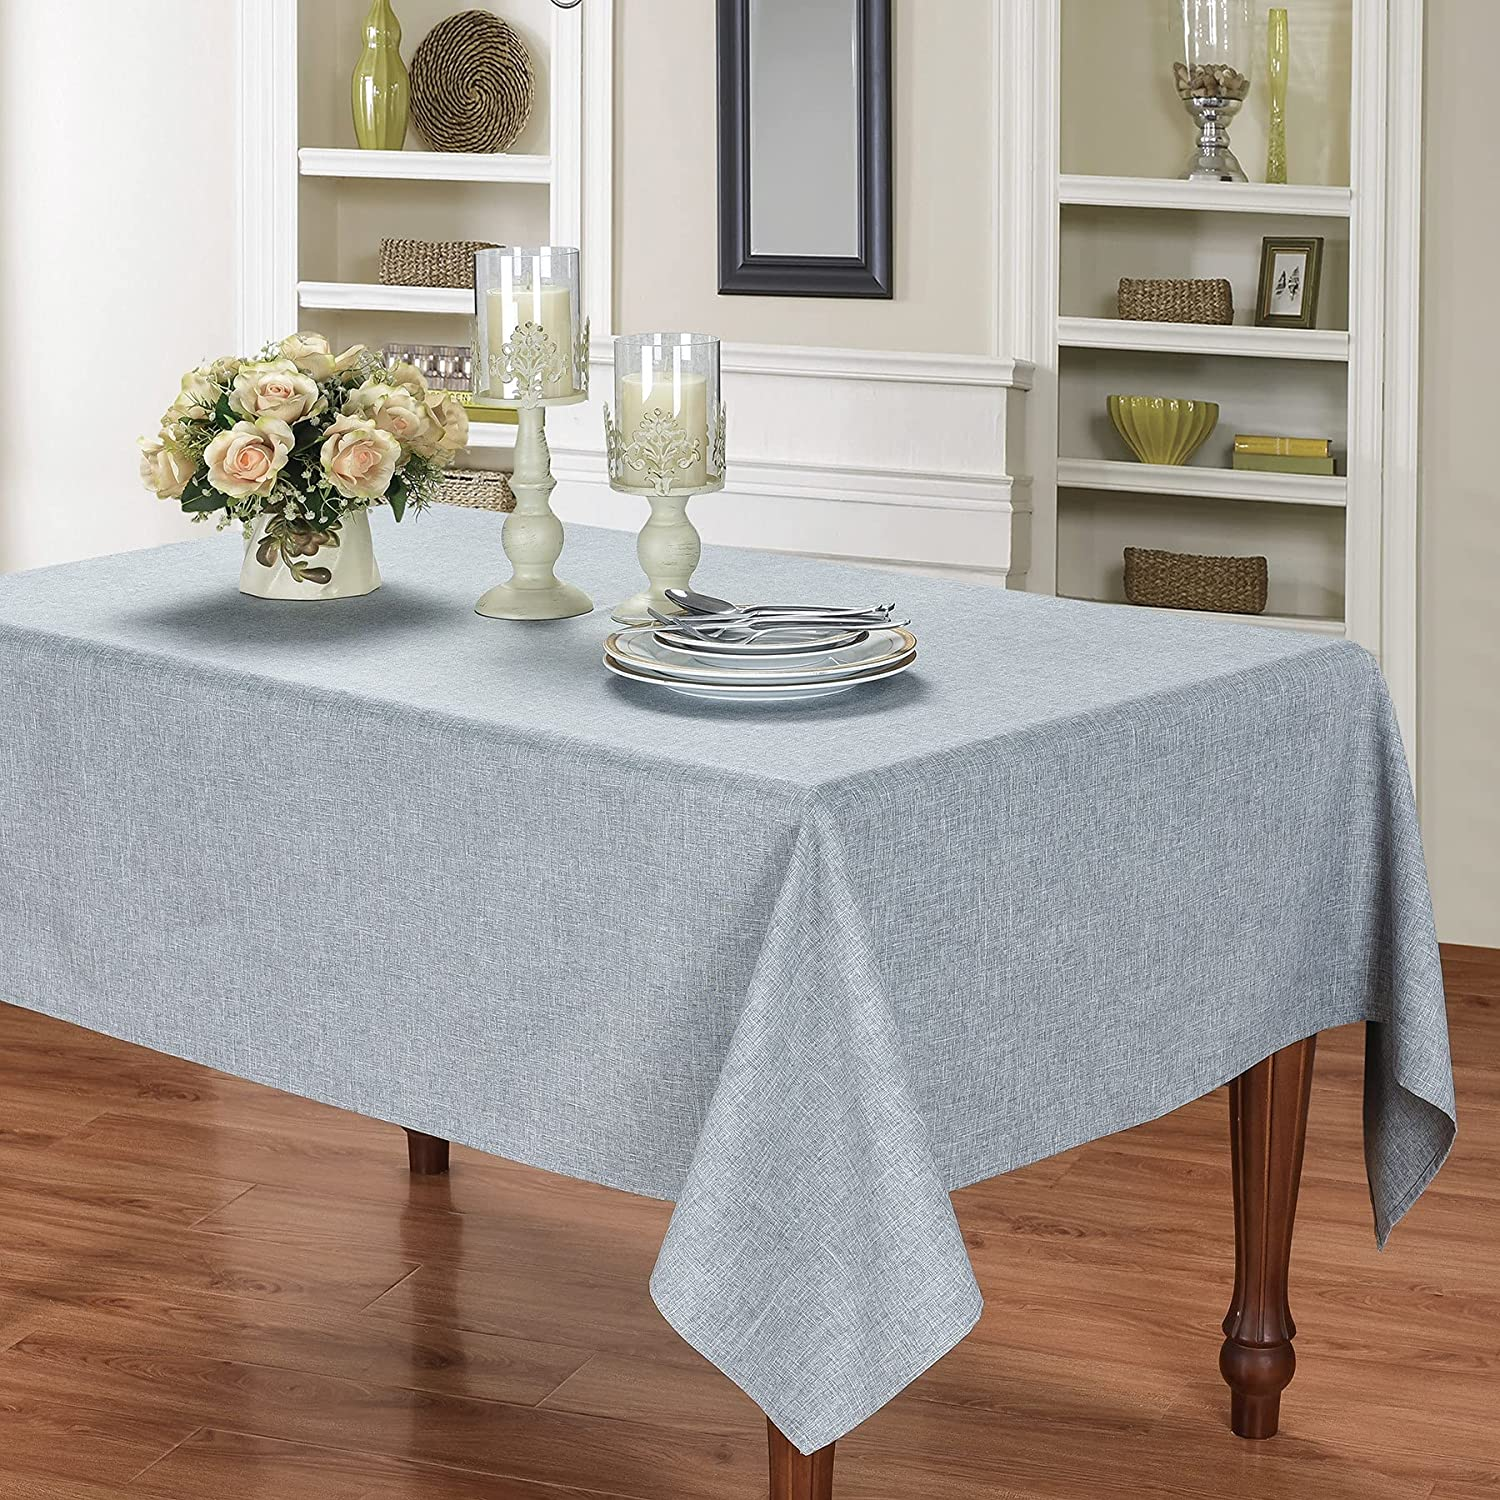 HOMCHIC Faux Linen Rectangle Clearance Max 88% OFF SALE Limited time Spillproof Washable Tablecloth -